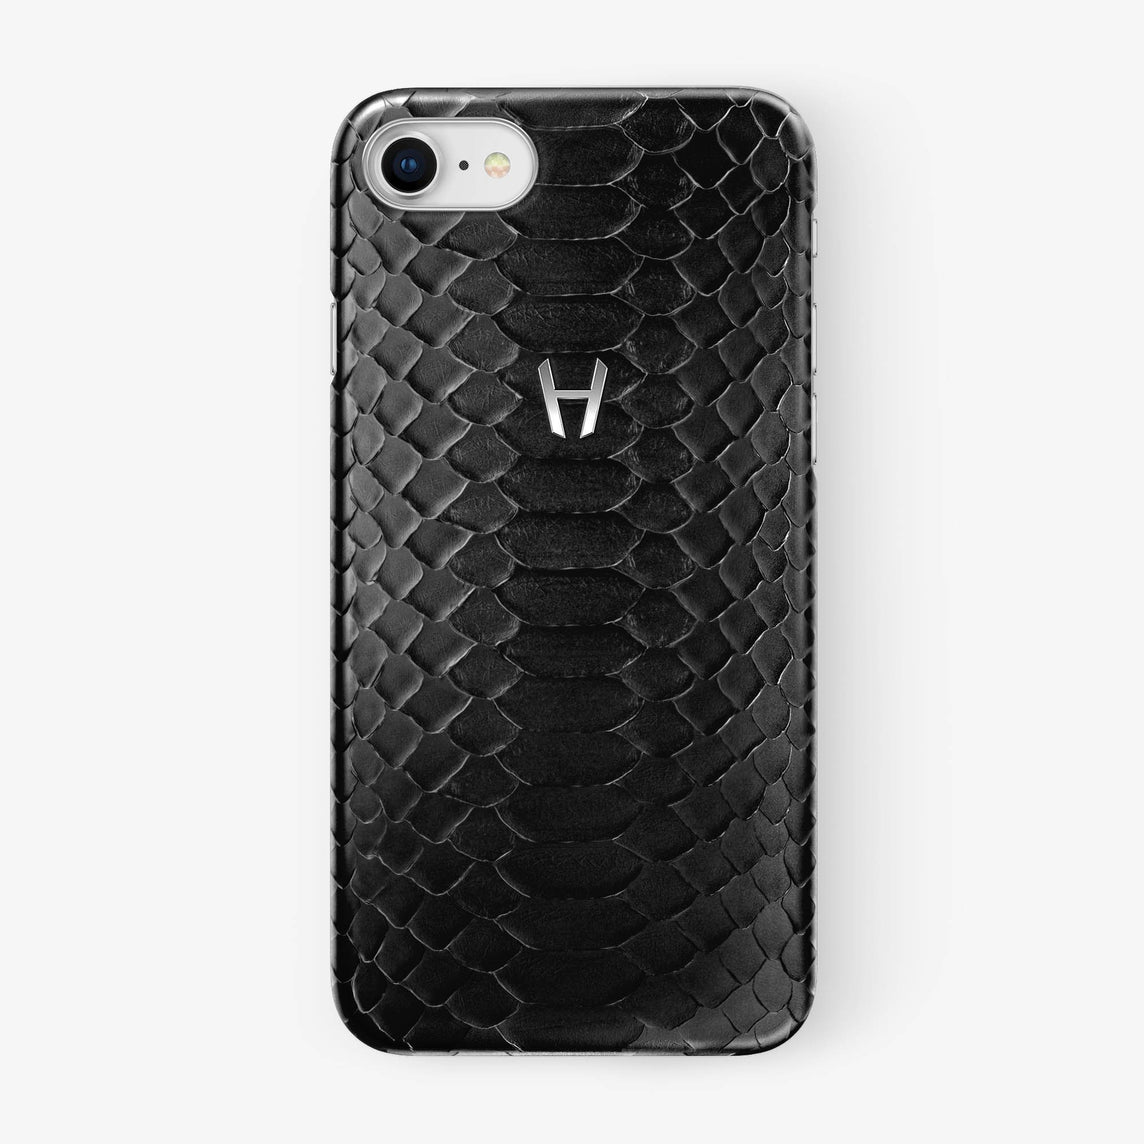 Black Python iPhone Case for iPhone 7/8 finishing stainless steel - Hadoro Luxury Cases